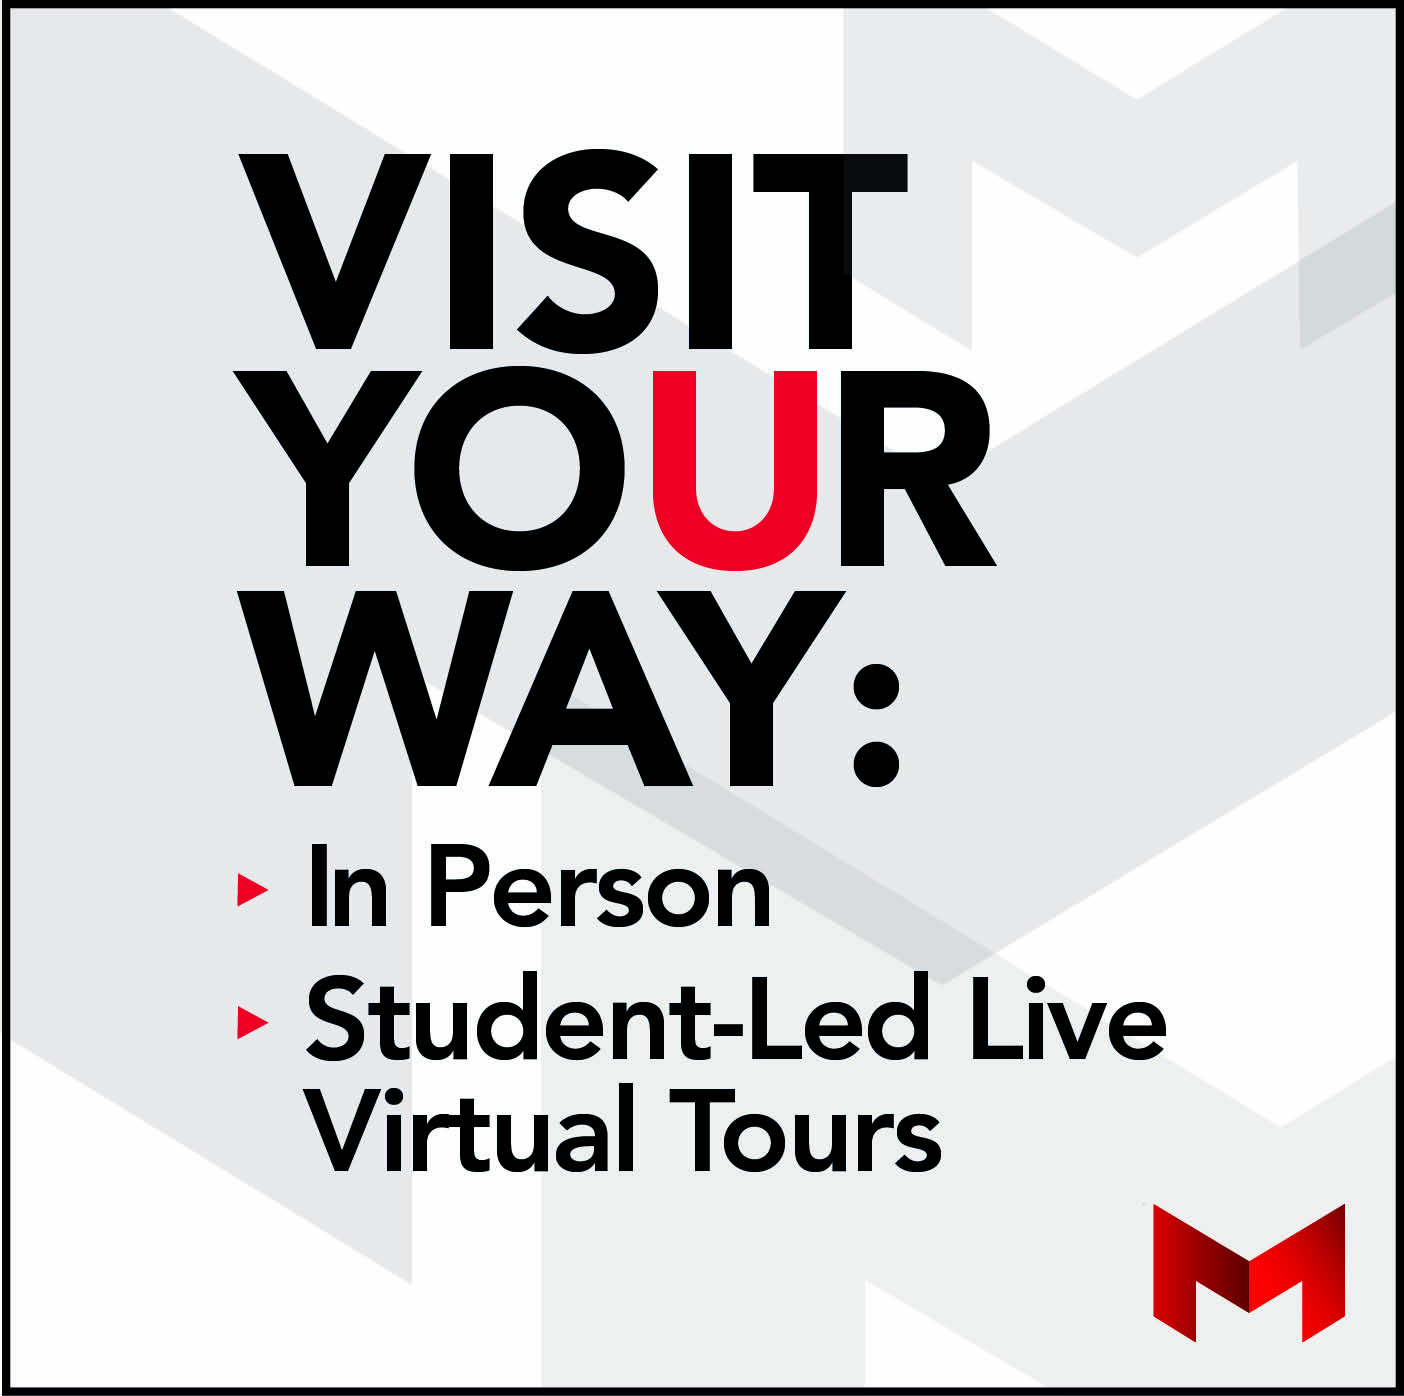 visit your way ad